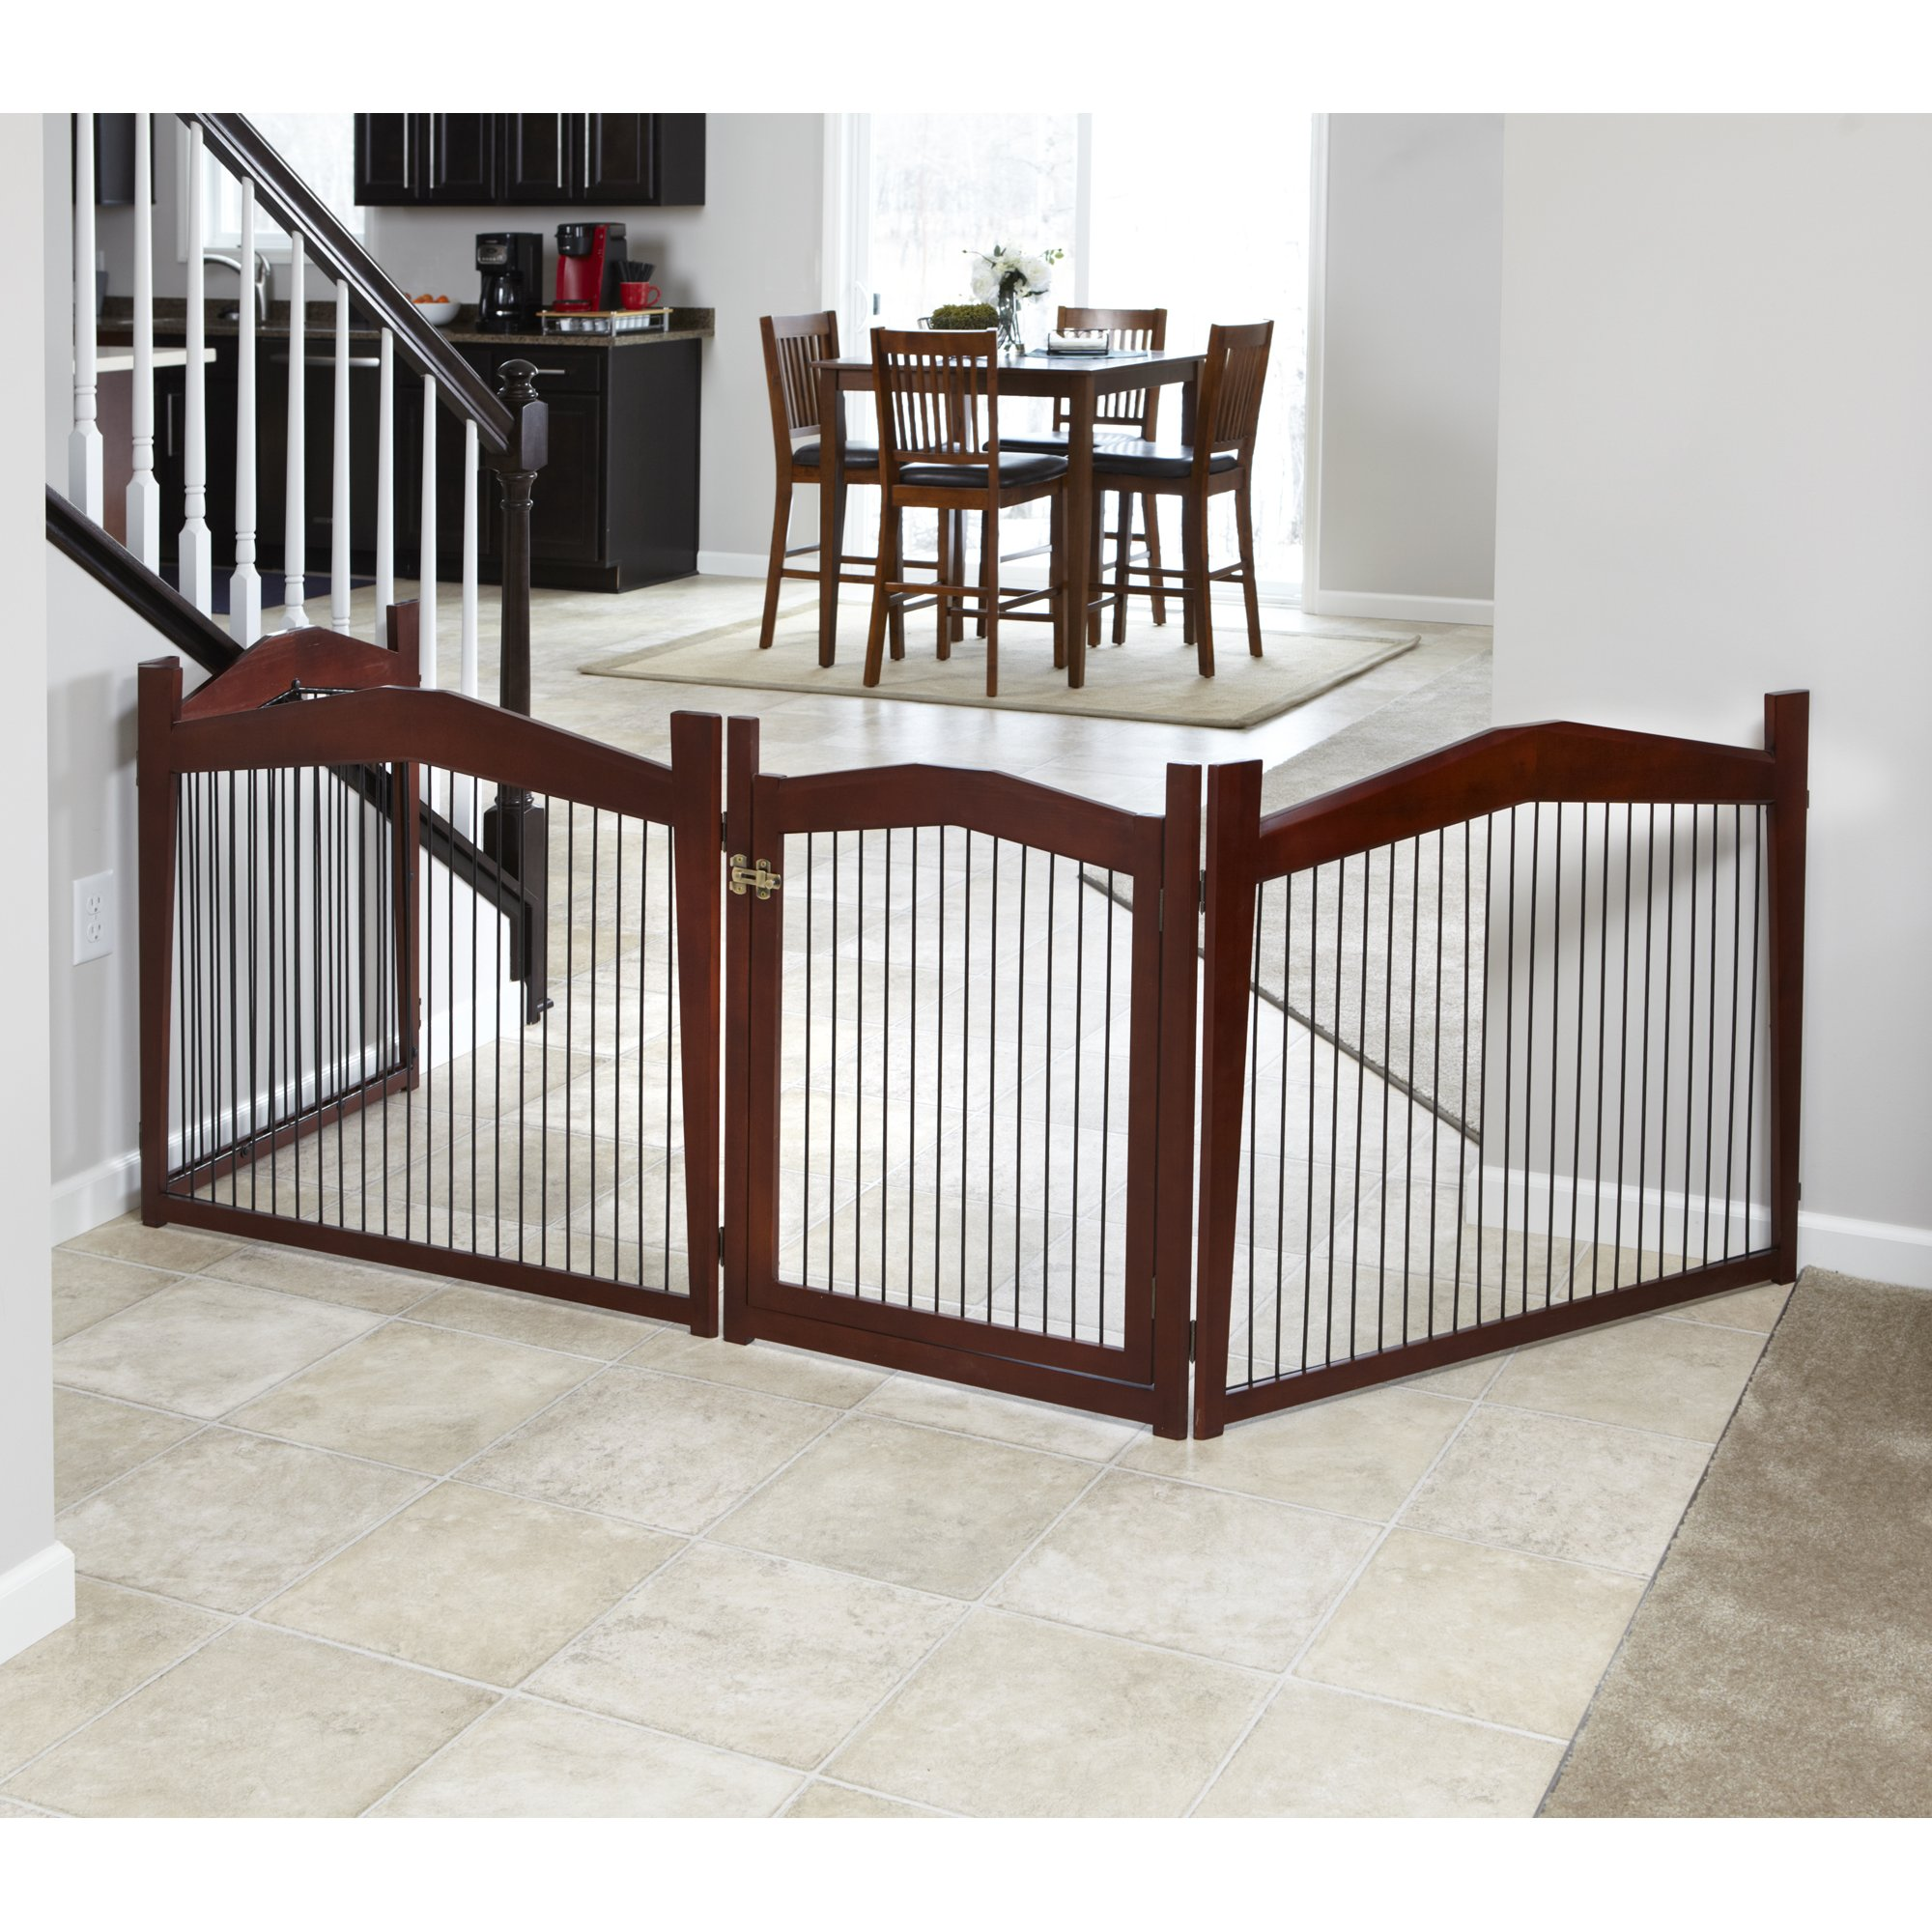 Merry products 2in1 configurable pet crate and gate 40